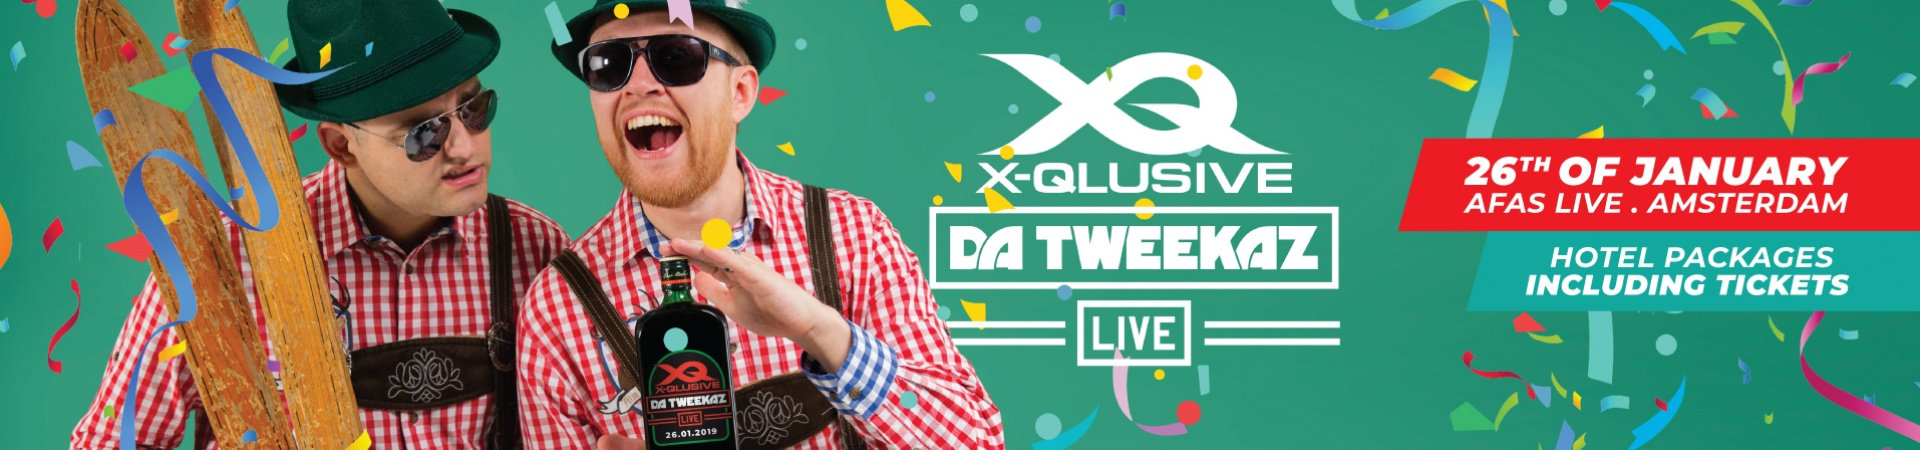 XQ DATWEEKAZ Banner